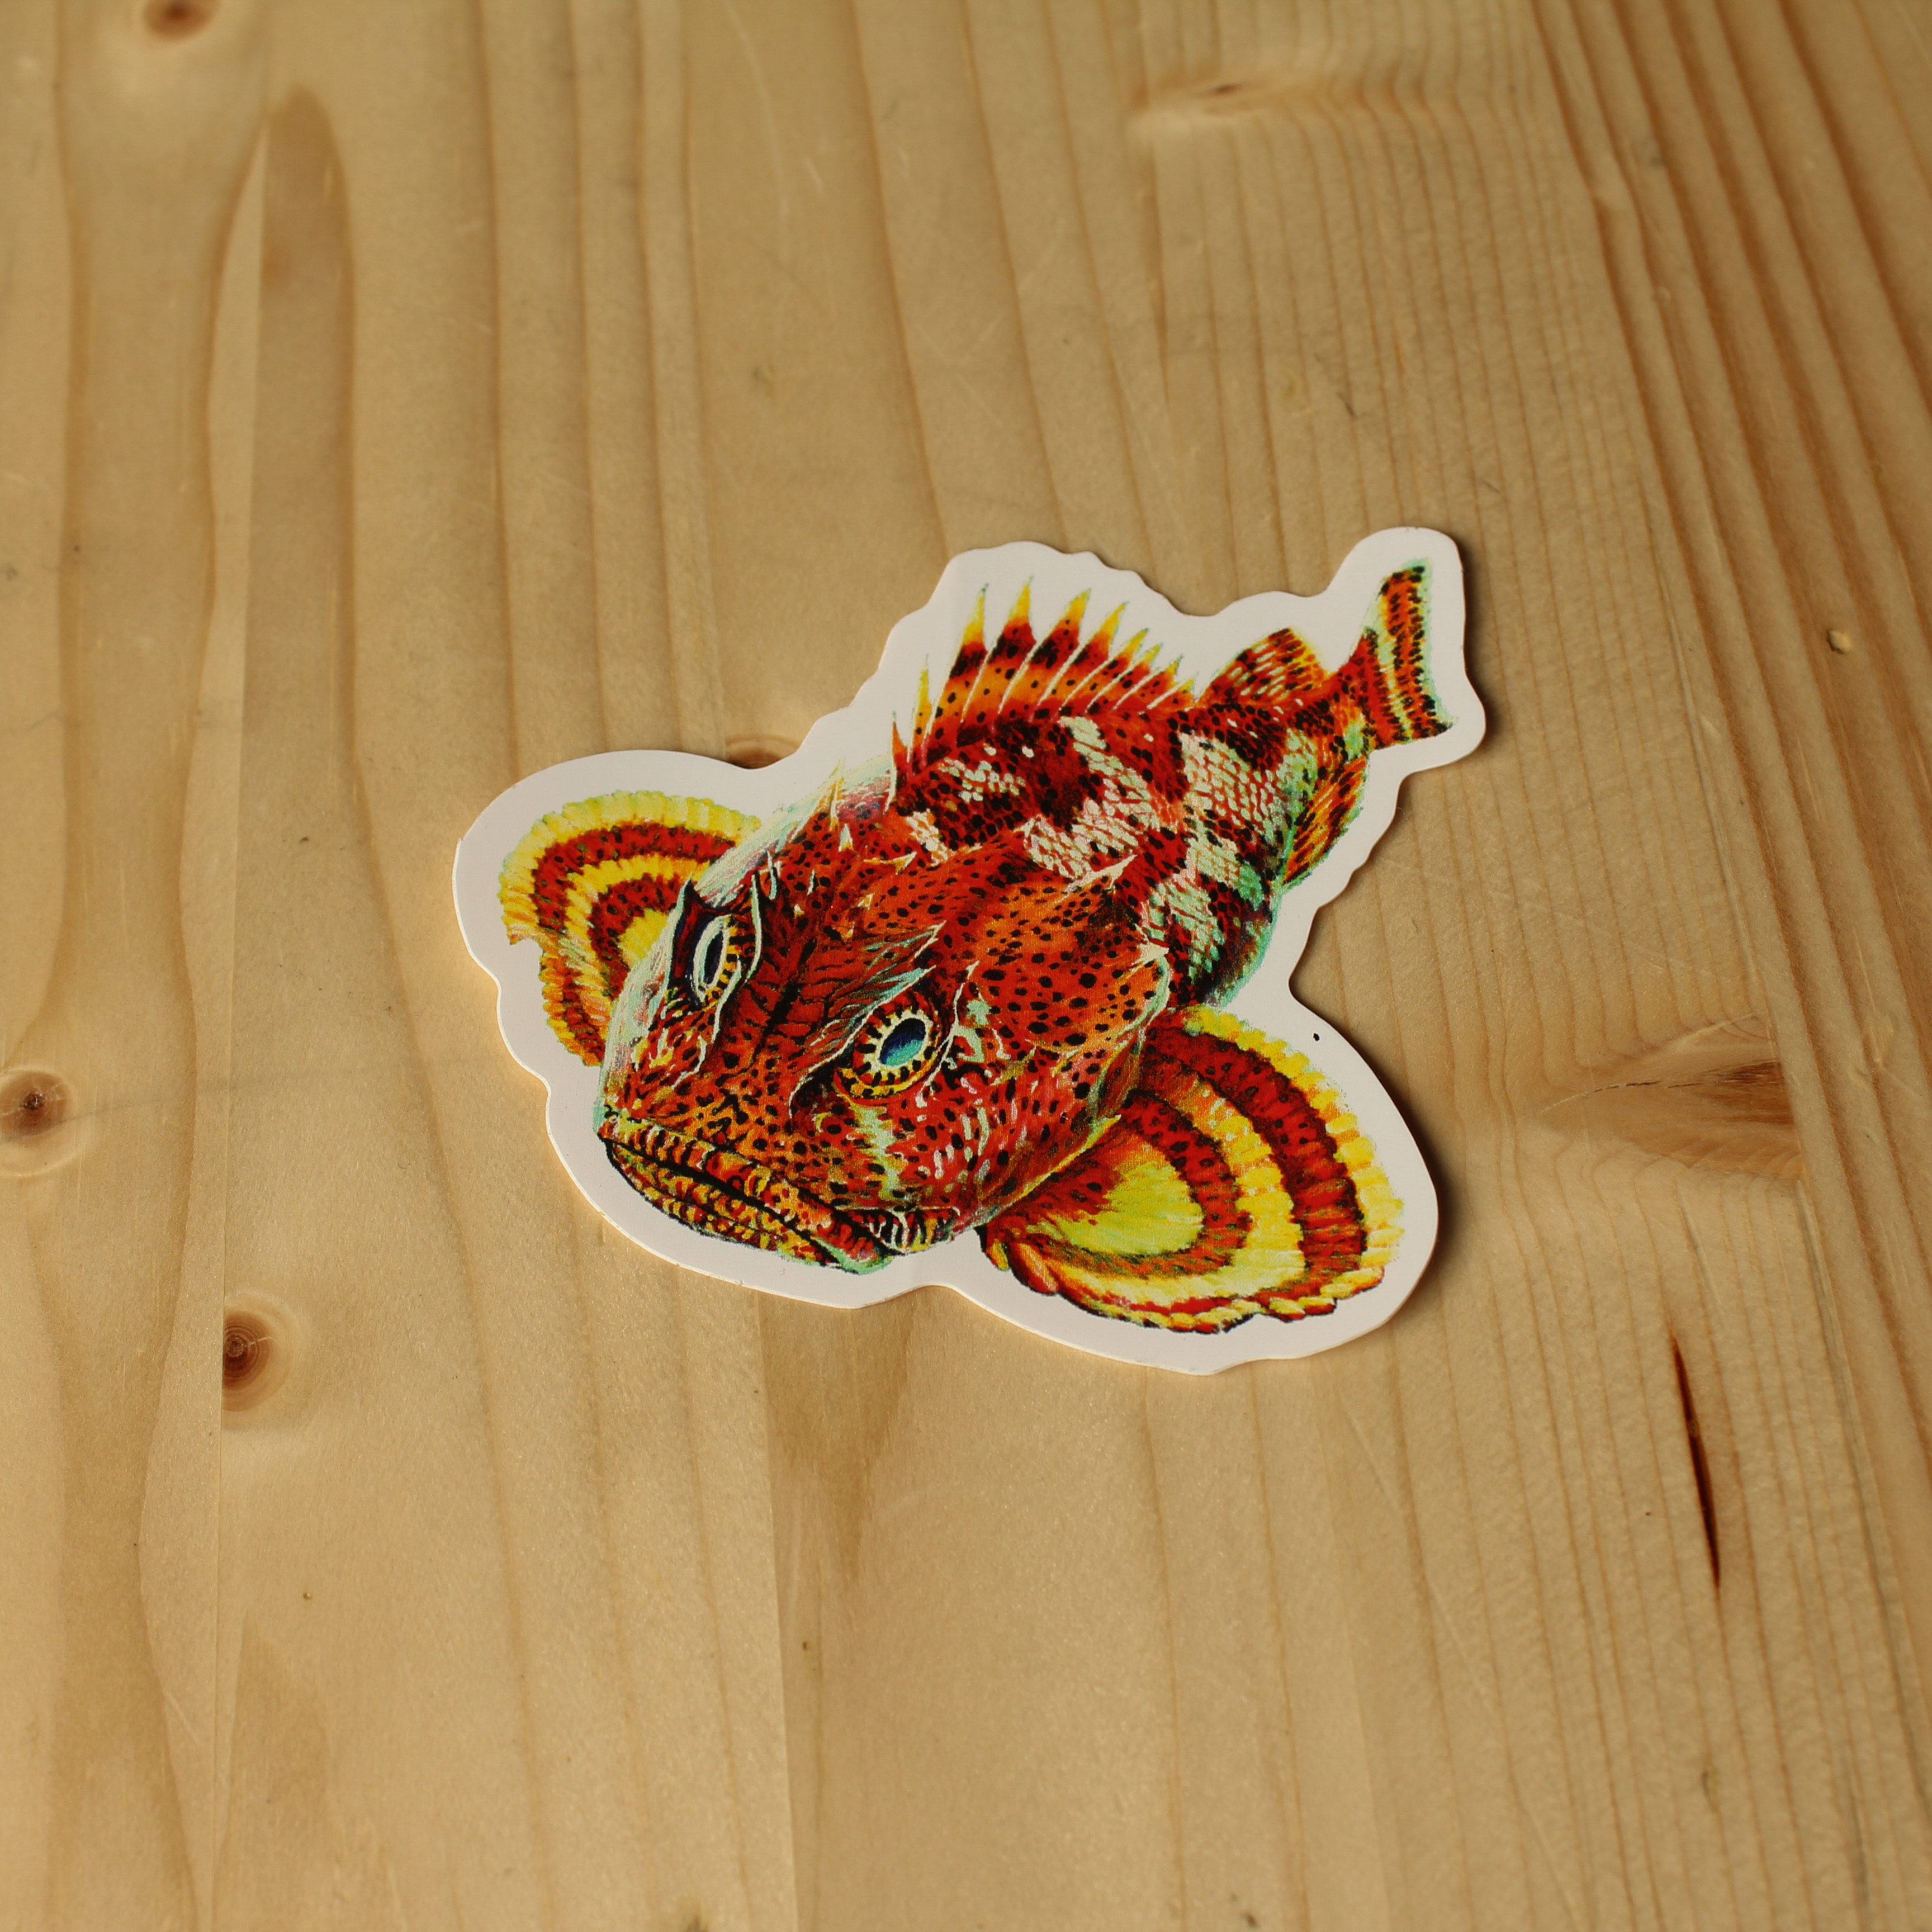 Ballast Point Die Cut Sculpin Sticker